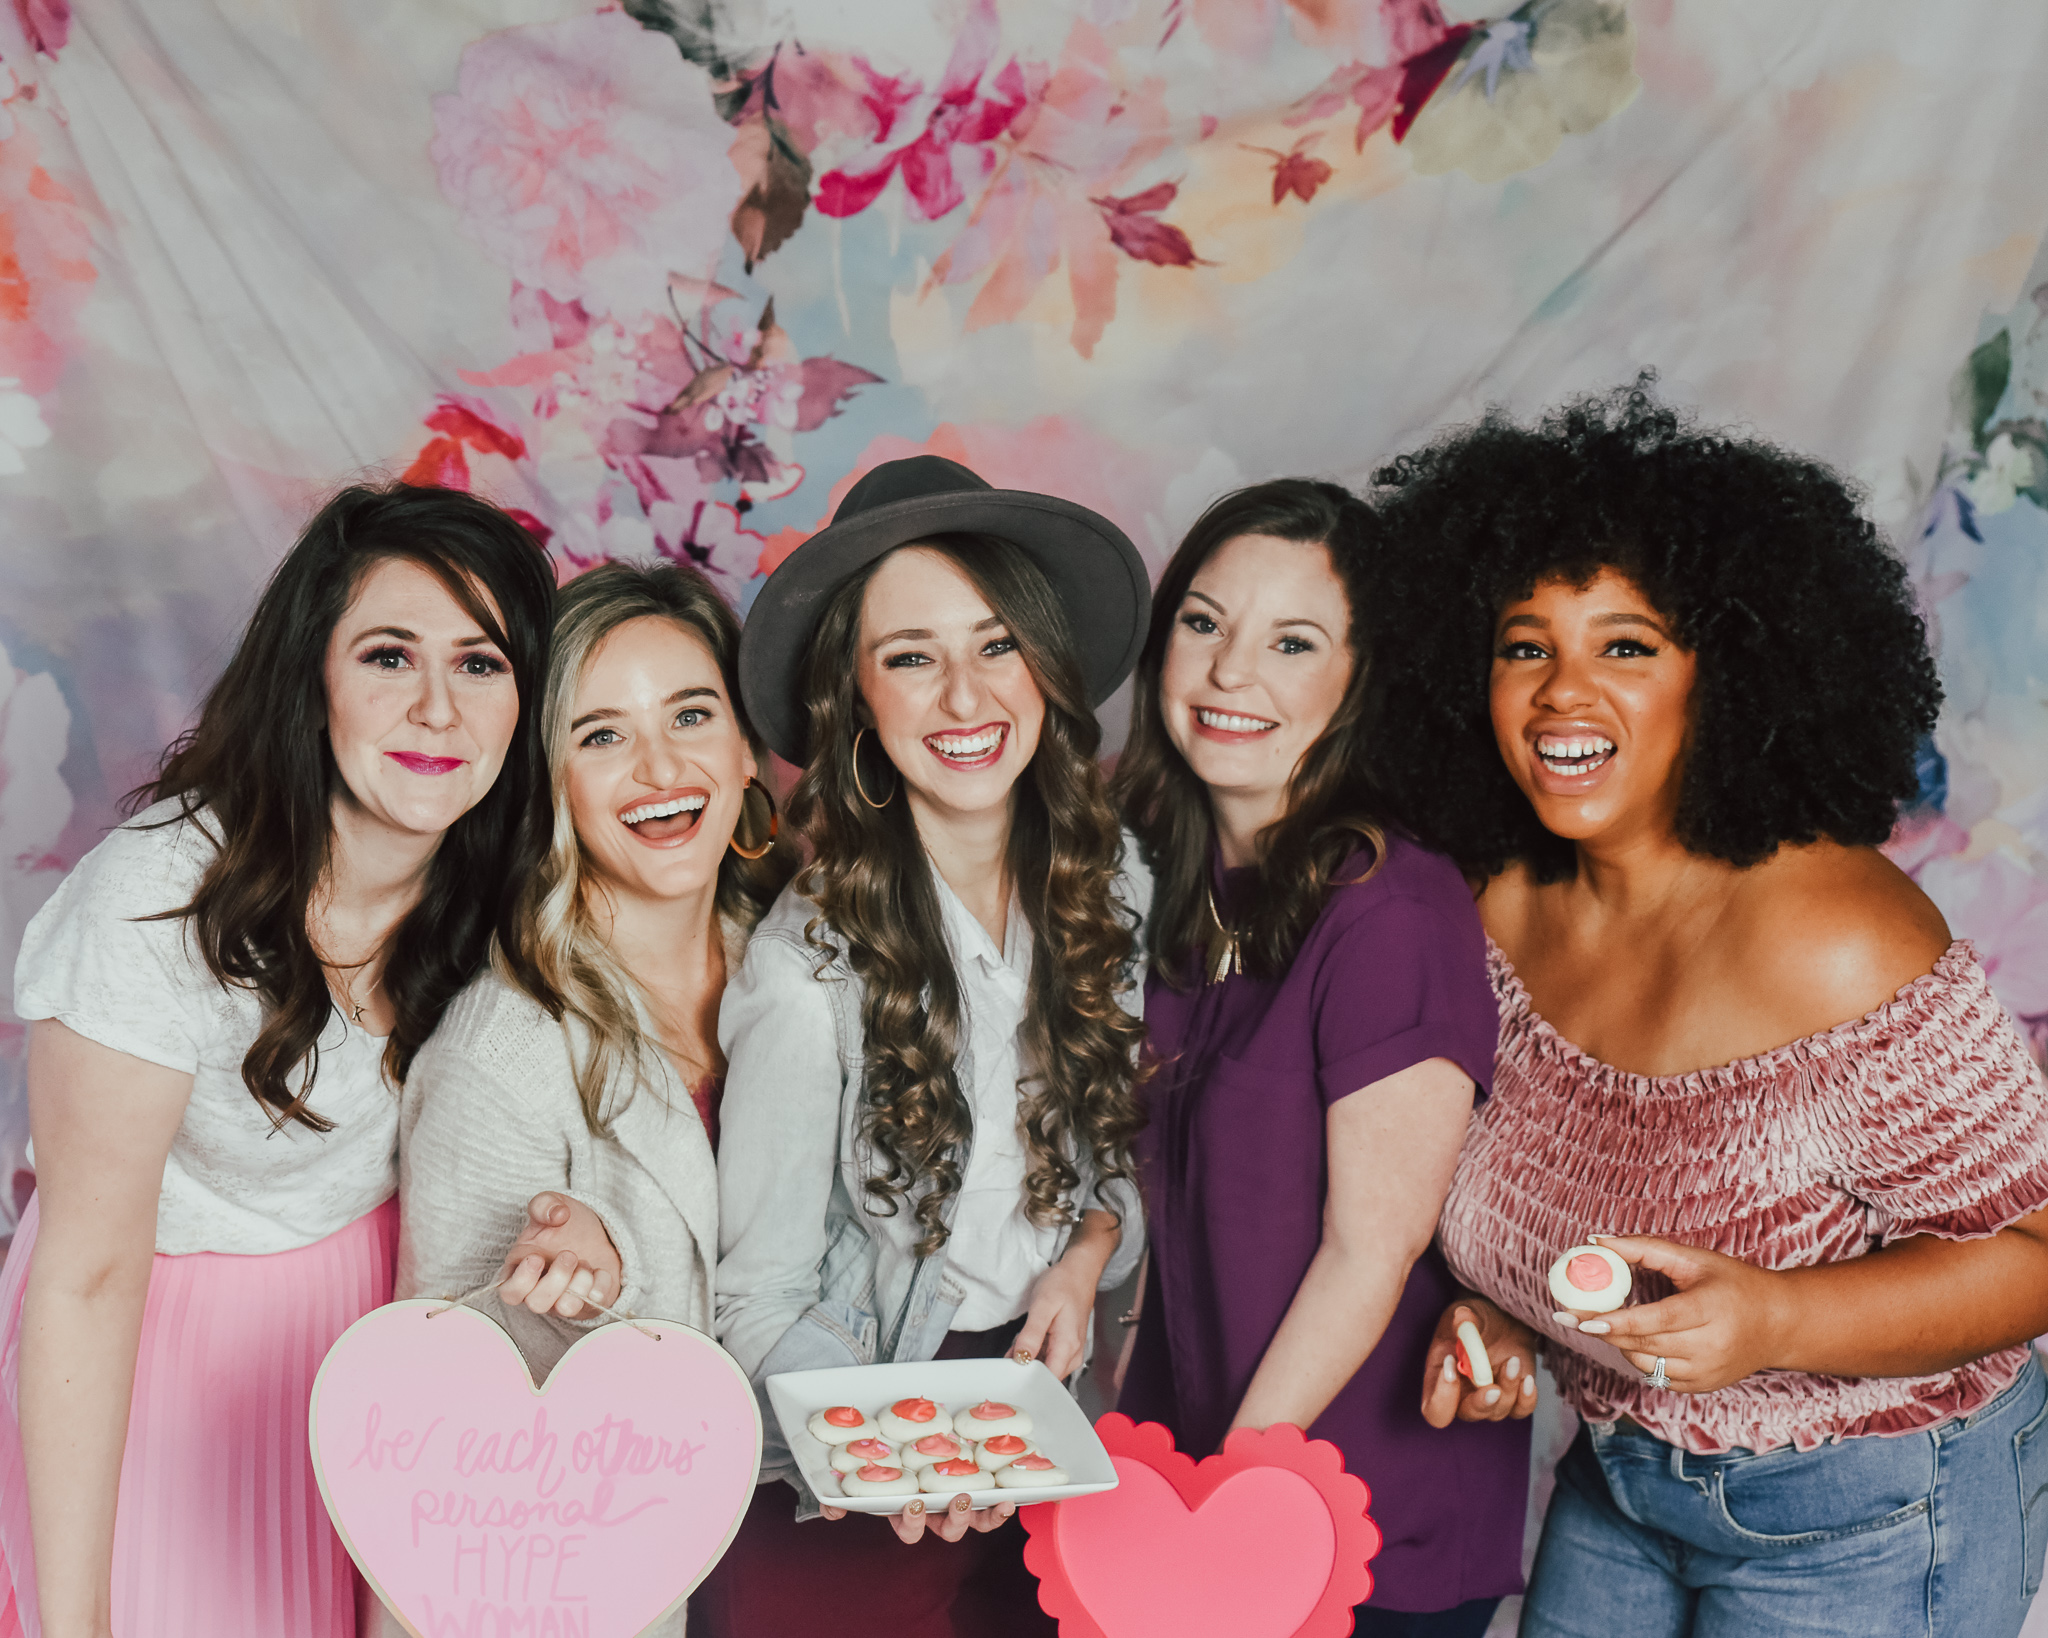 5-WAYS-TO-HOST-THE-ULTIMATE-GALENTINES-DAY-PARTY-1.jpg